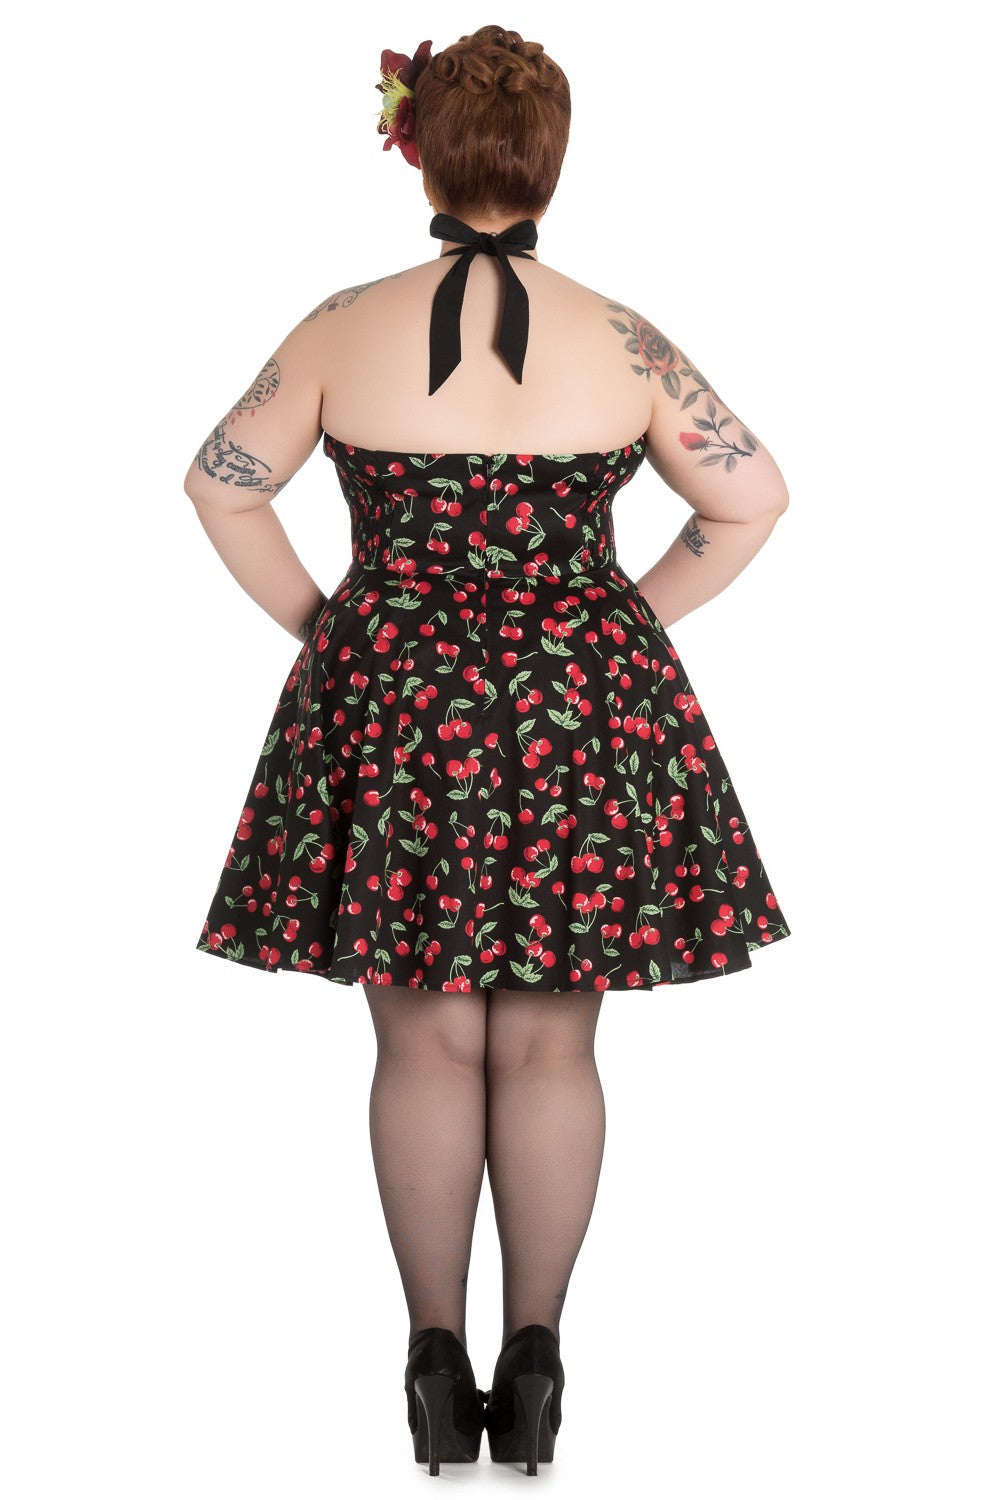 Robe cerise mini +